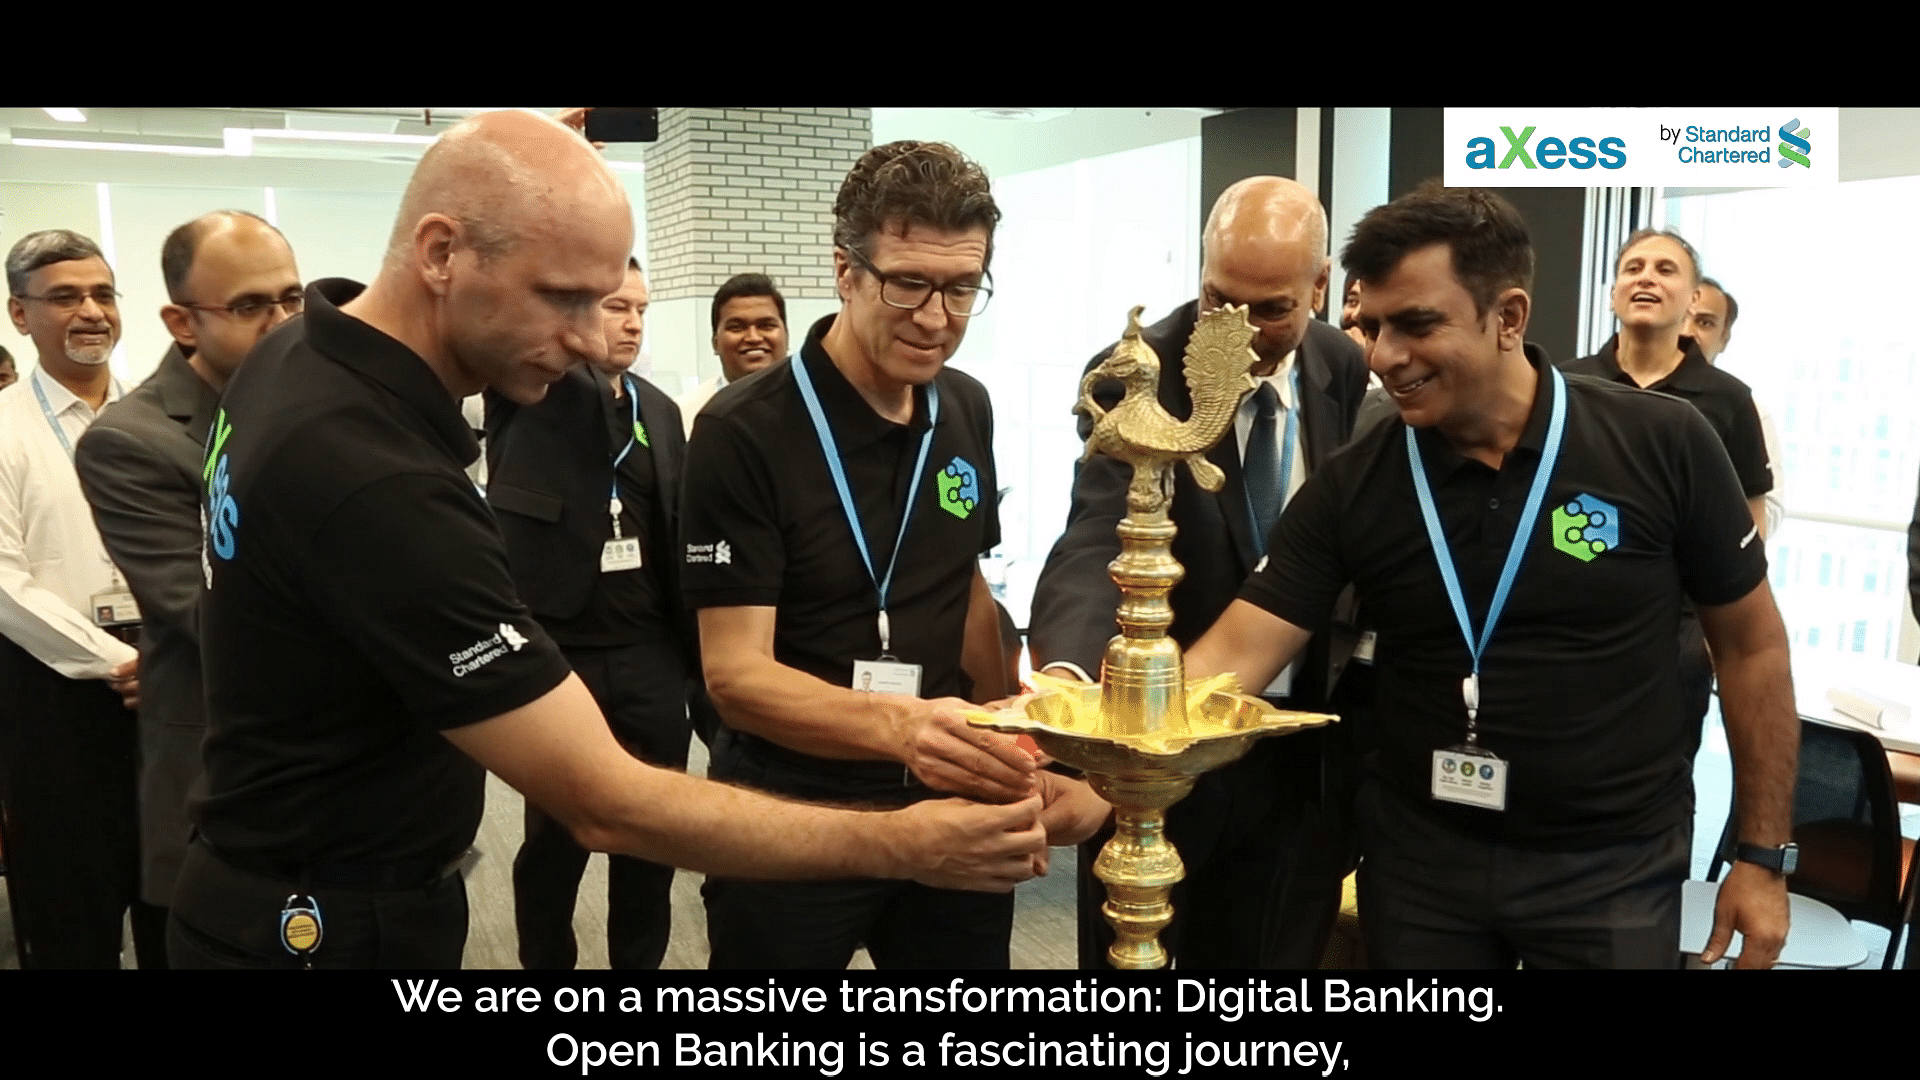 Standard Chartered leaders and developers on Open Banking